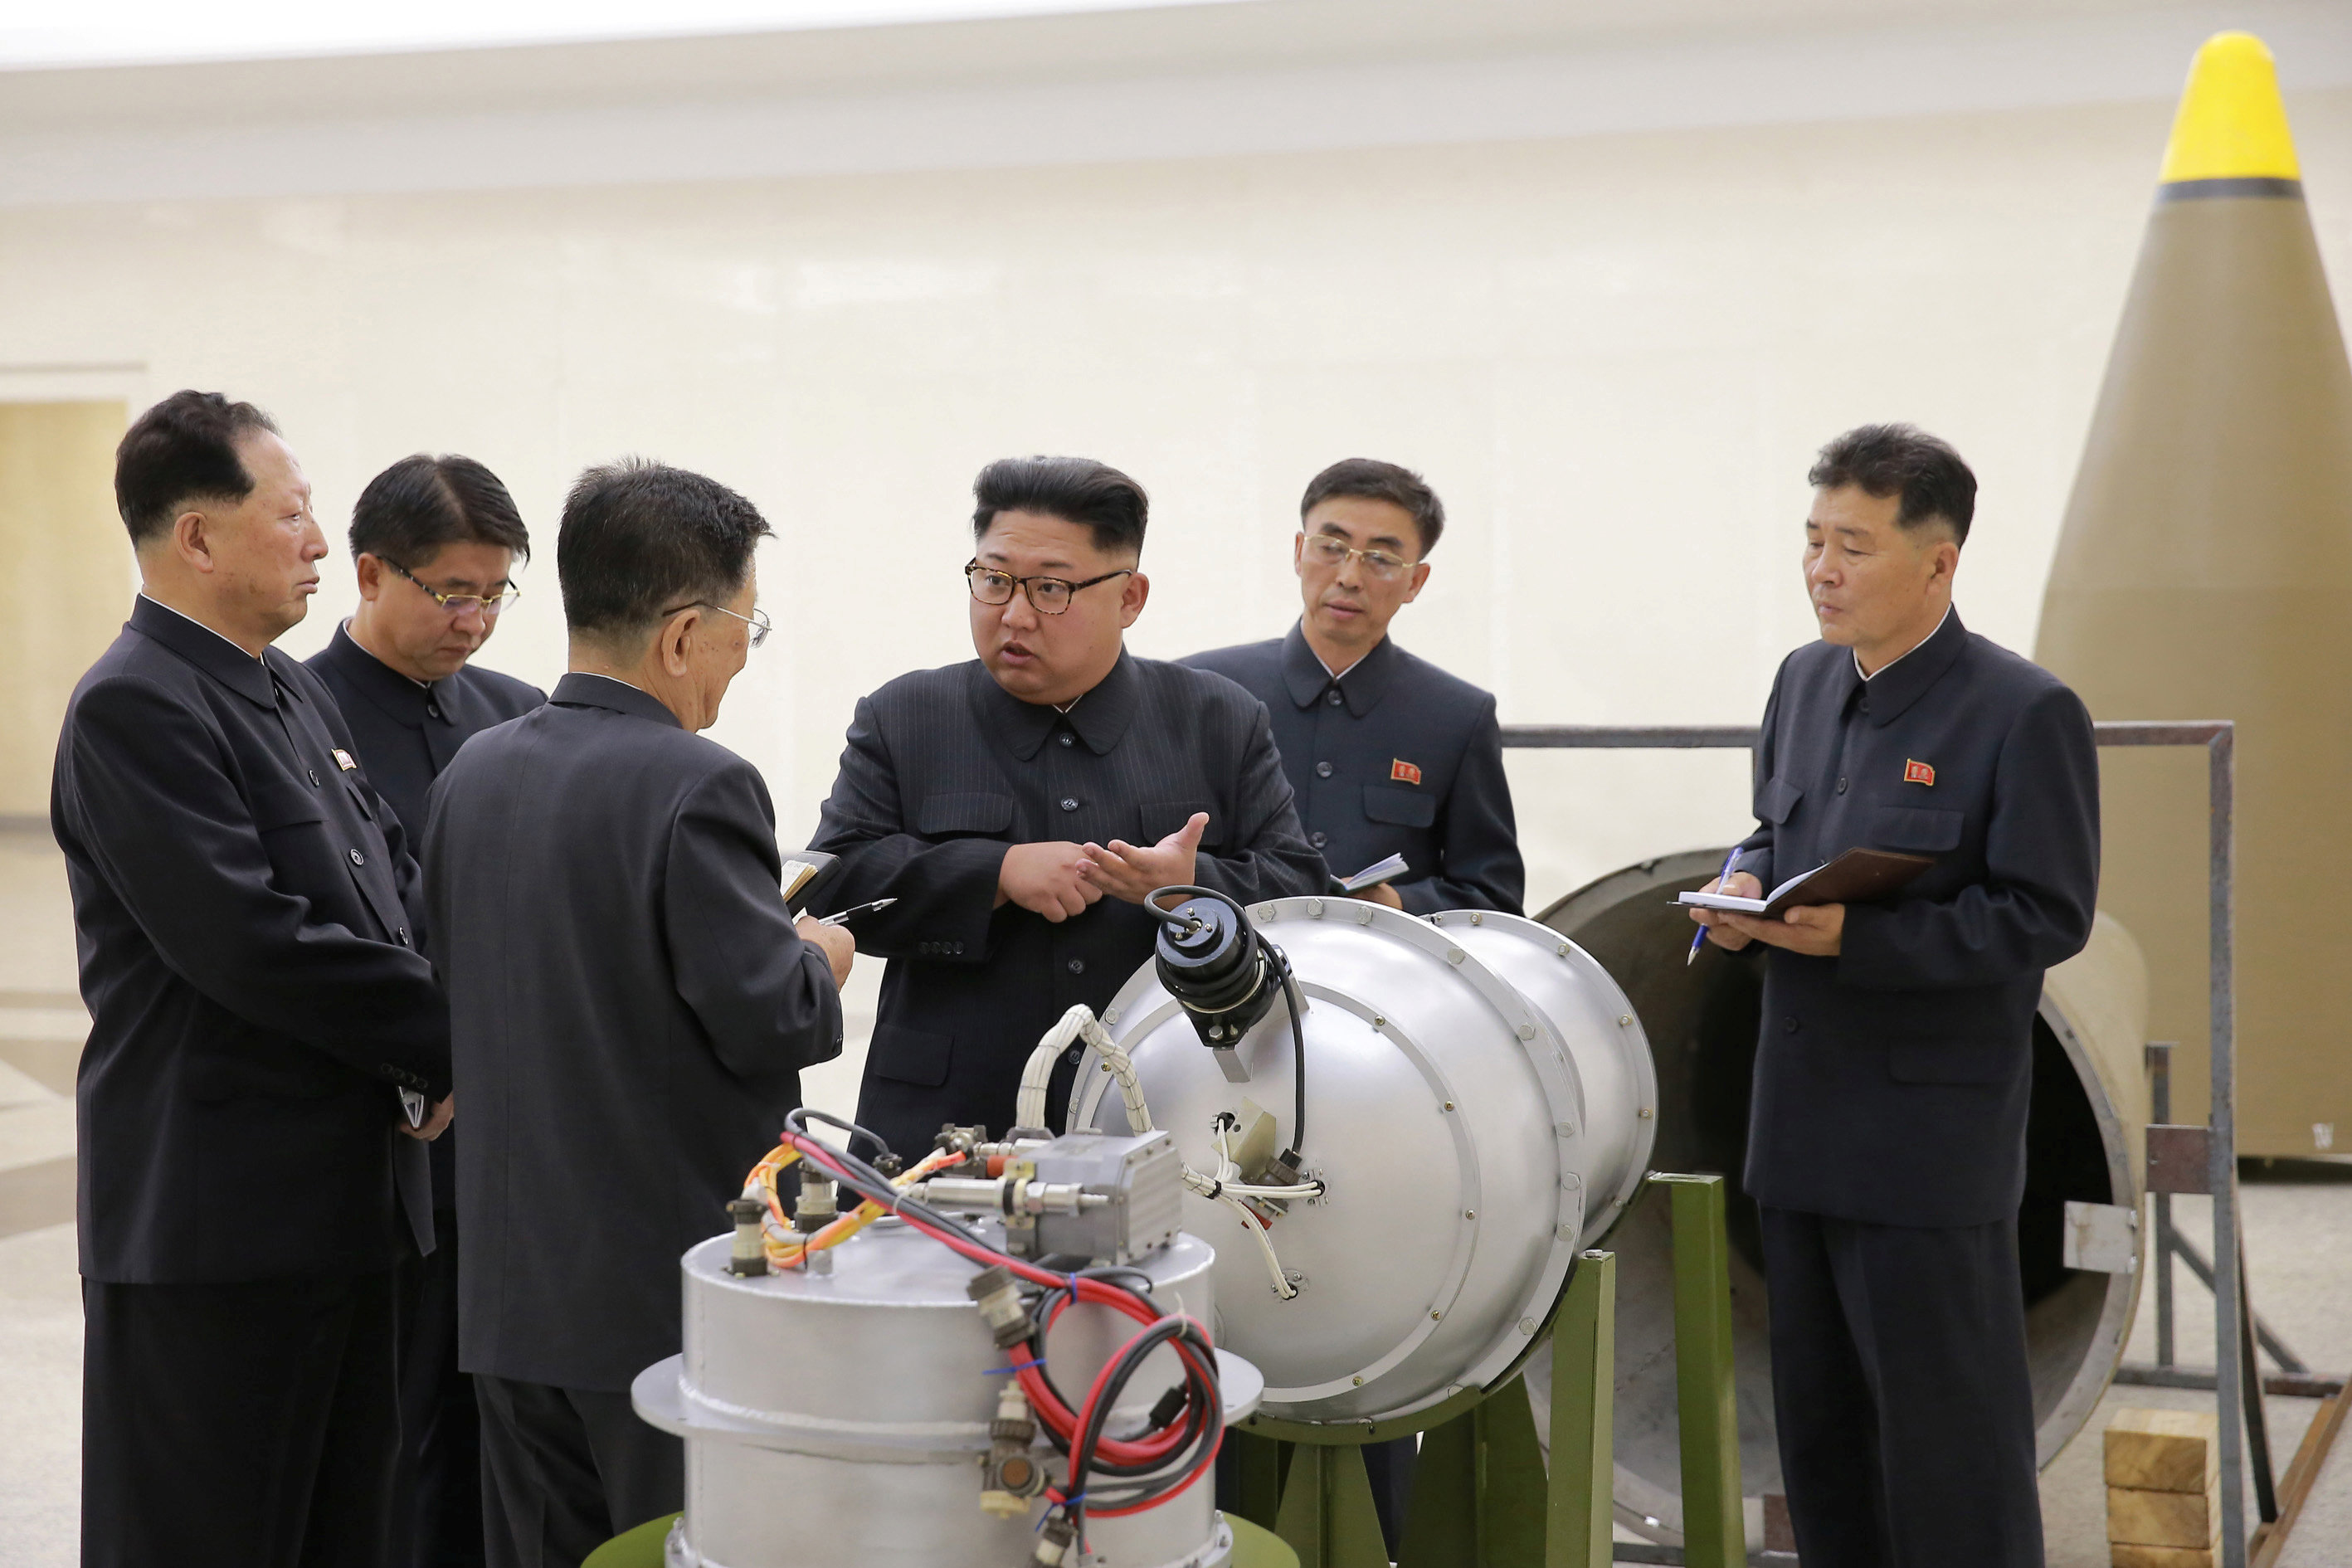 North Korean leader Kim Jong Un provides guidance on a nuclear weapons program in this undated photo released by North Korea's Korean Central News Agency (KCNA) in Pyongyang on Sept. 3, 2017. (KCNA via REUTERS)